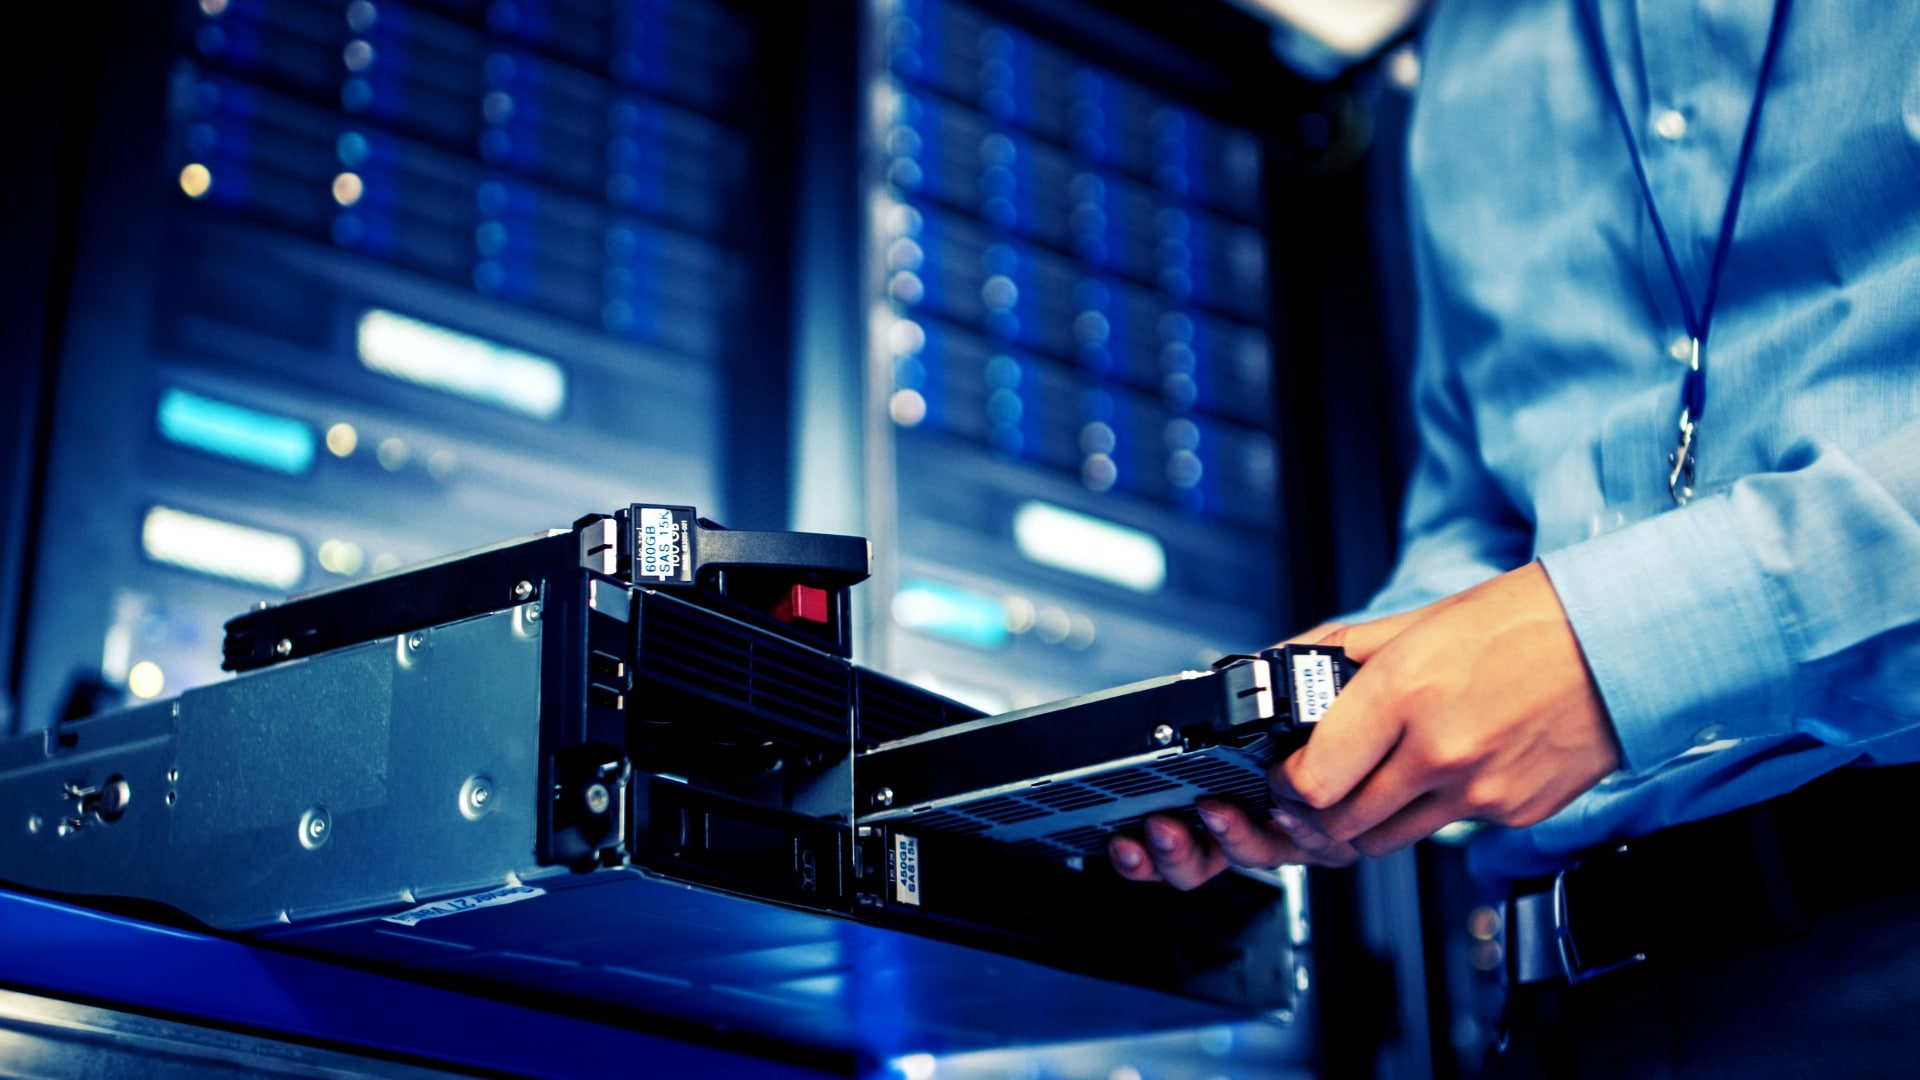 How to rack a server: Step by step installation